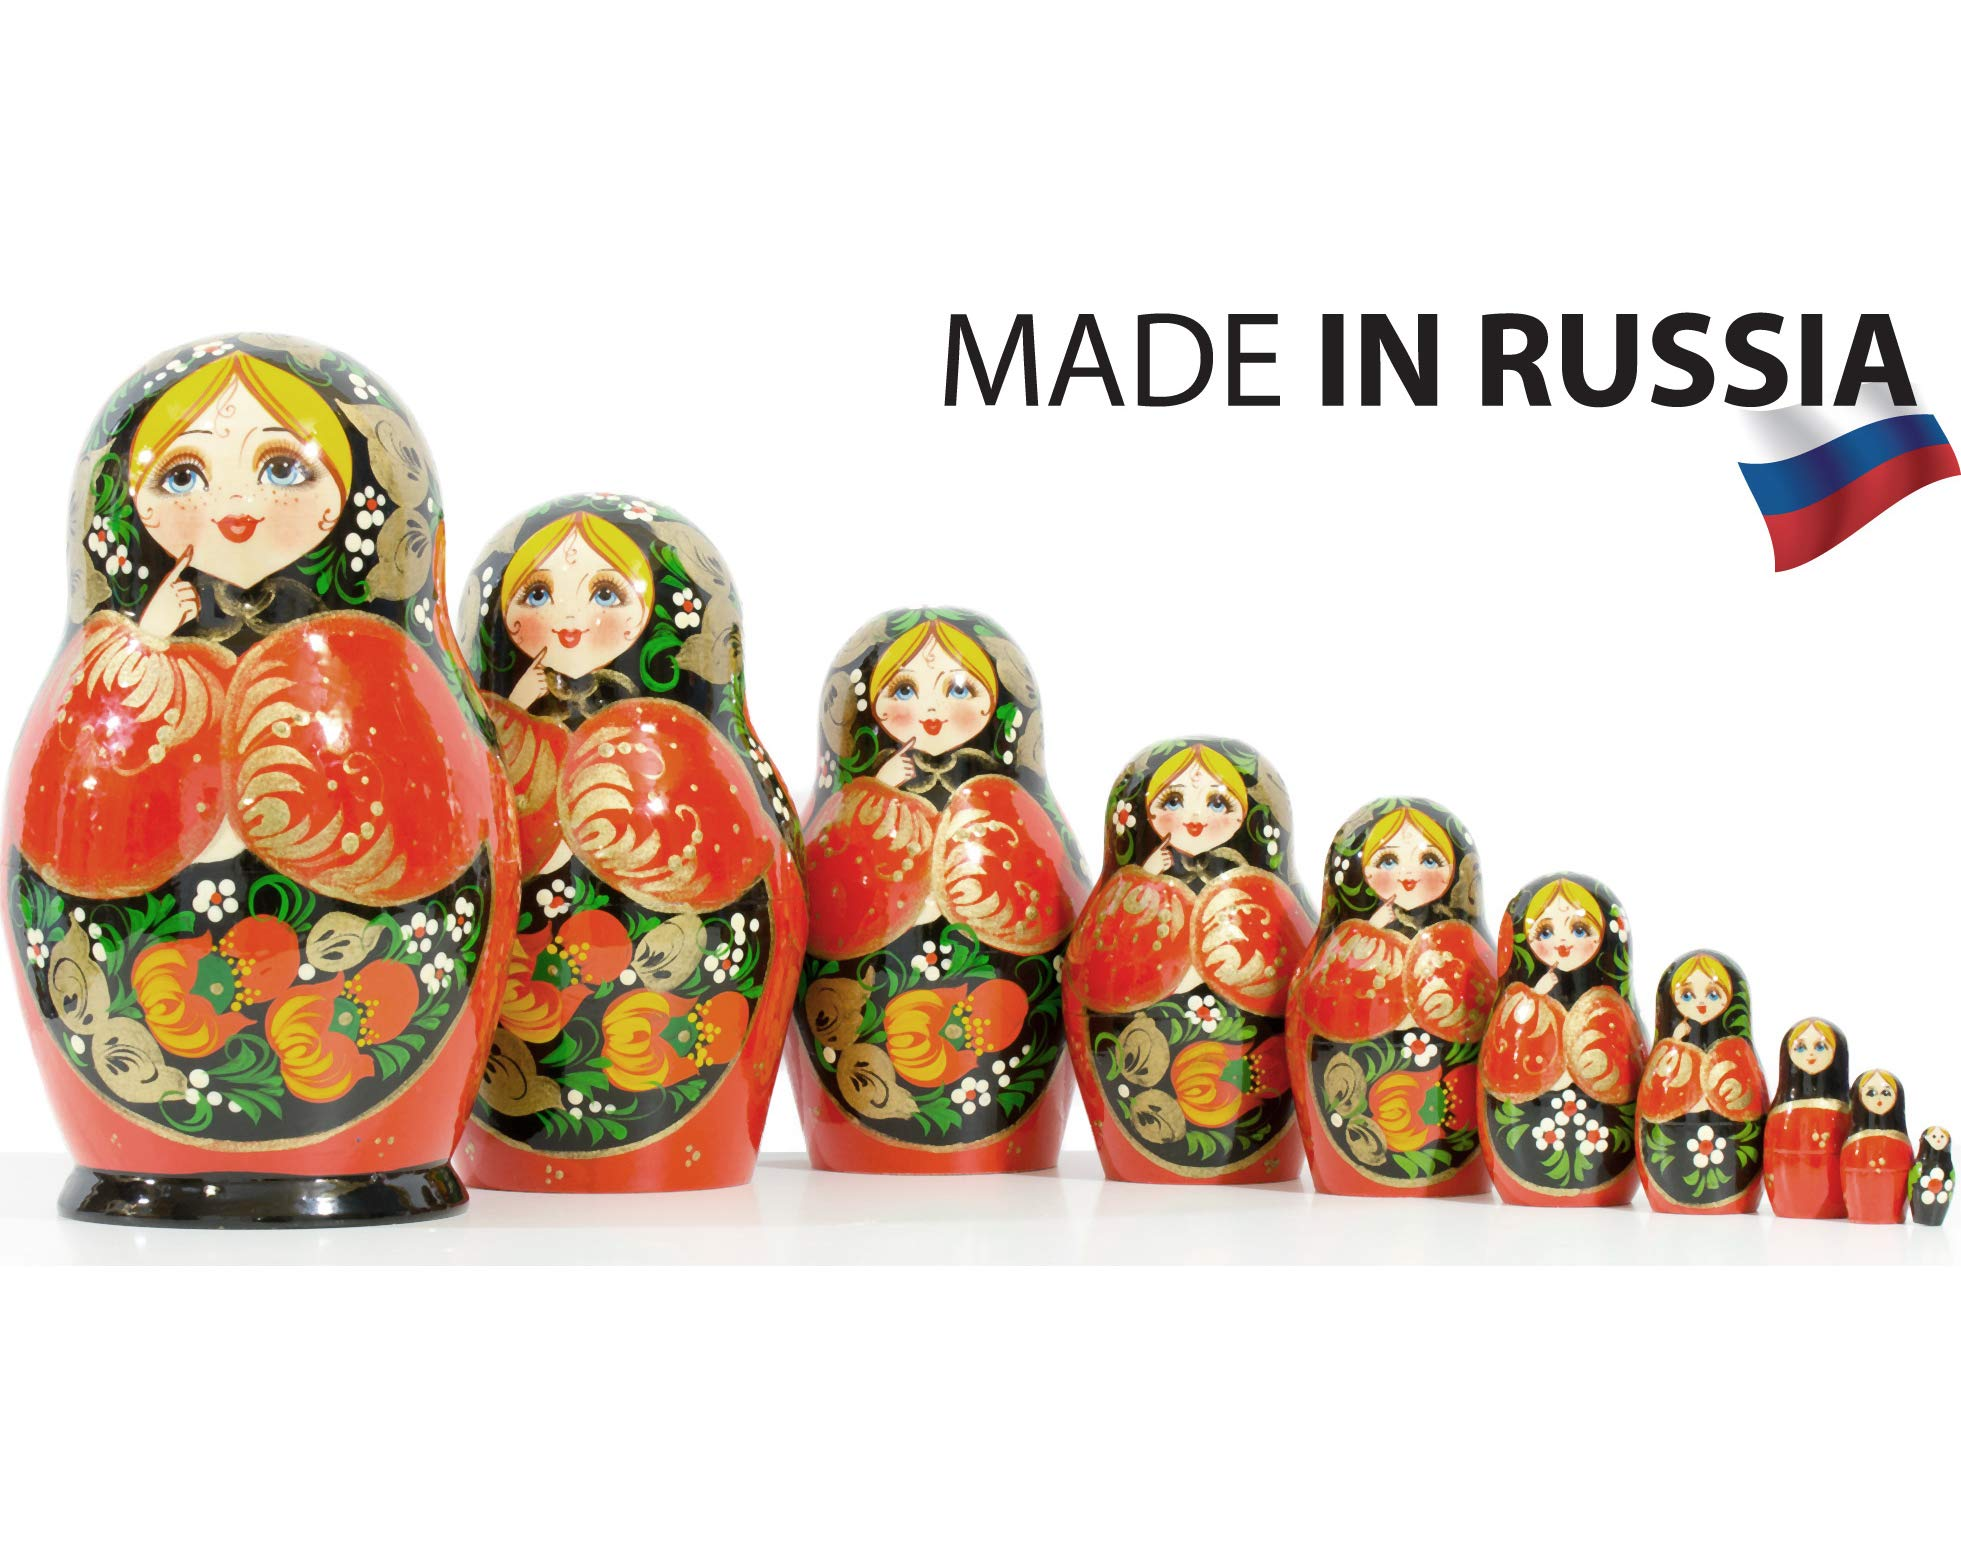 Russian Nesting Doll - Kirov - VJATKA - Hand Painted in Russia - Big Size - Wooden Decoration Gift Doll - Matryoshka Babushka (Style C, 8.25``(10 Dolls in 1))